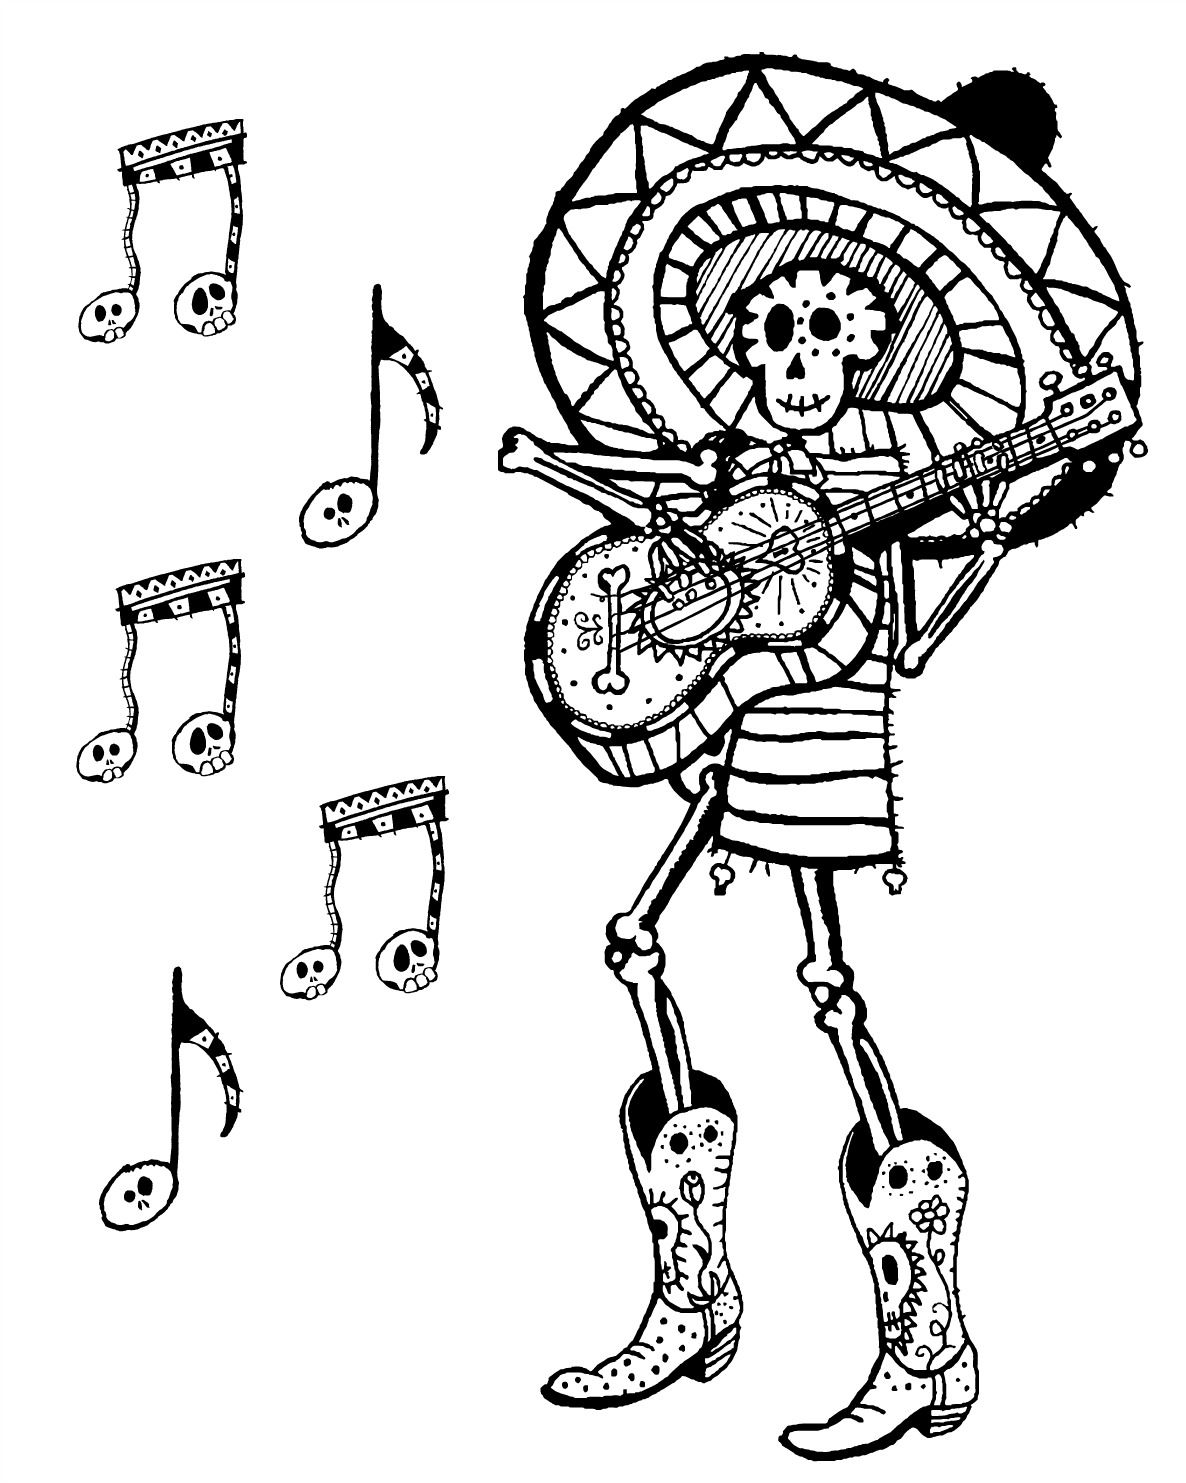 Free Printable Day Of The Dead Skeleton Musician Coloring Page Dayofthedead Diadelosmuertos Freep Coloring Pages Vintage Witch Art Halloween Printables Free